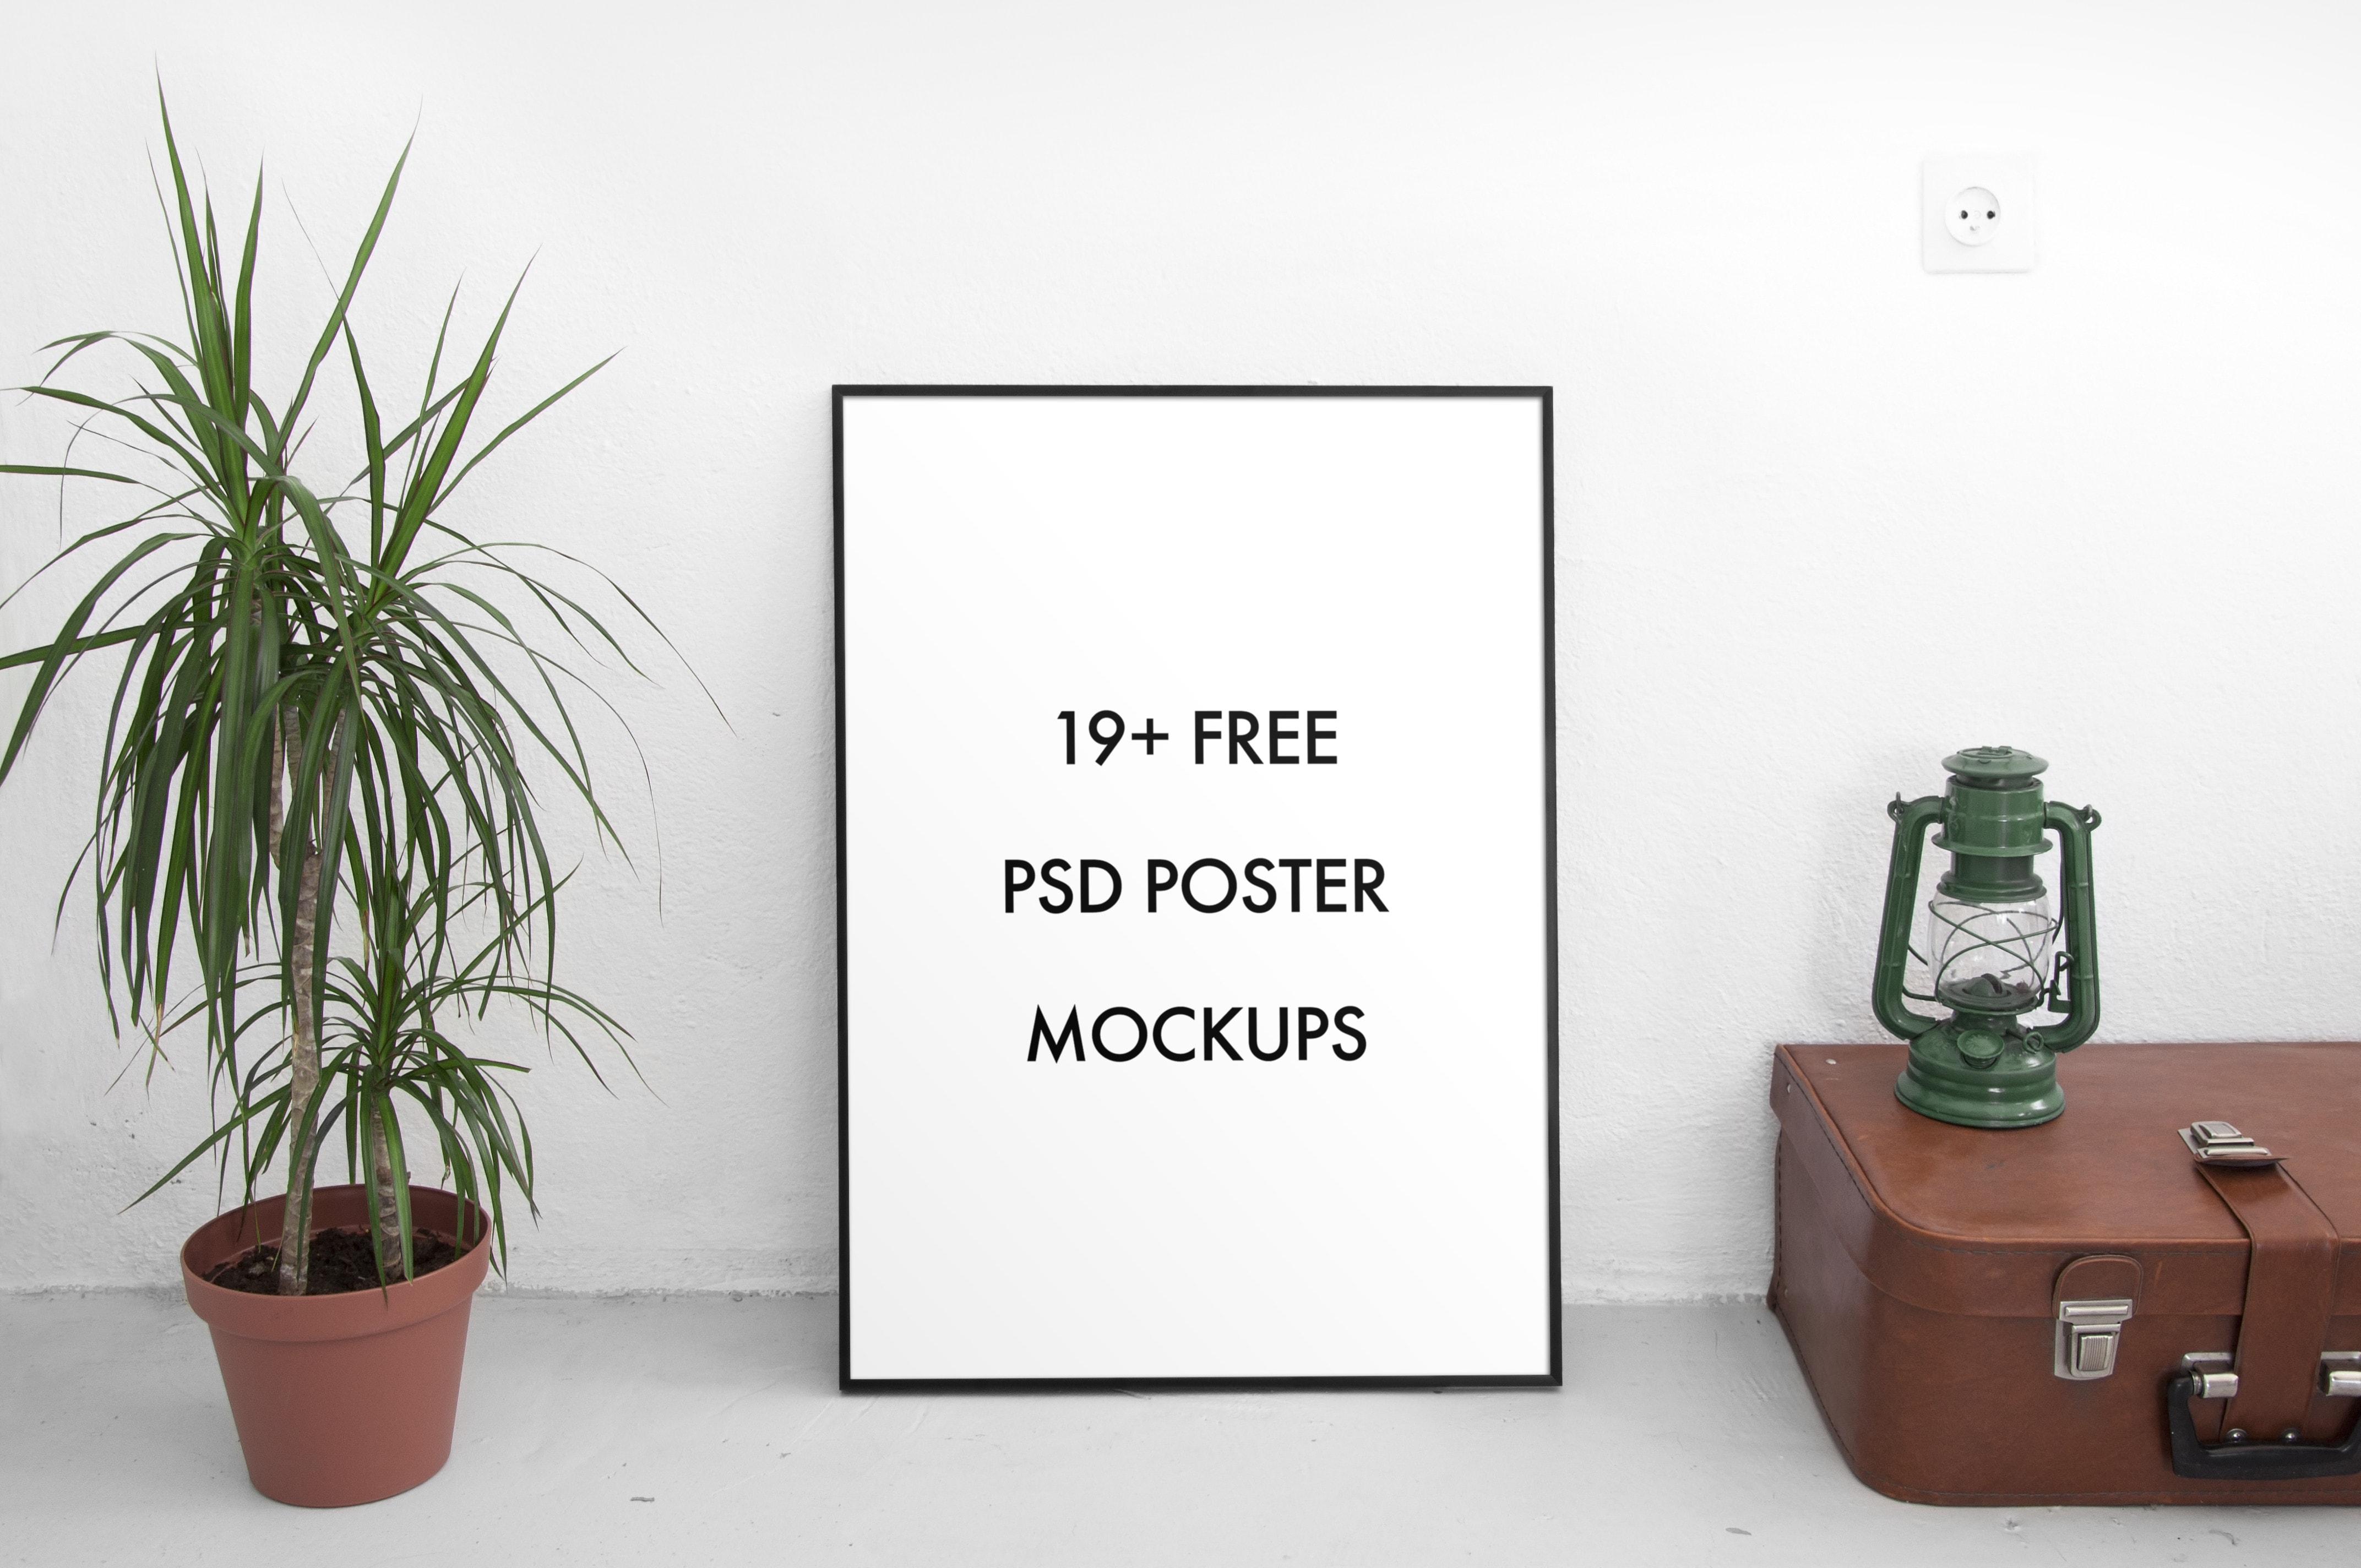 Free PSD Poster Mockups